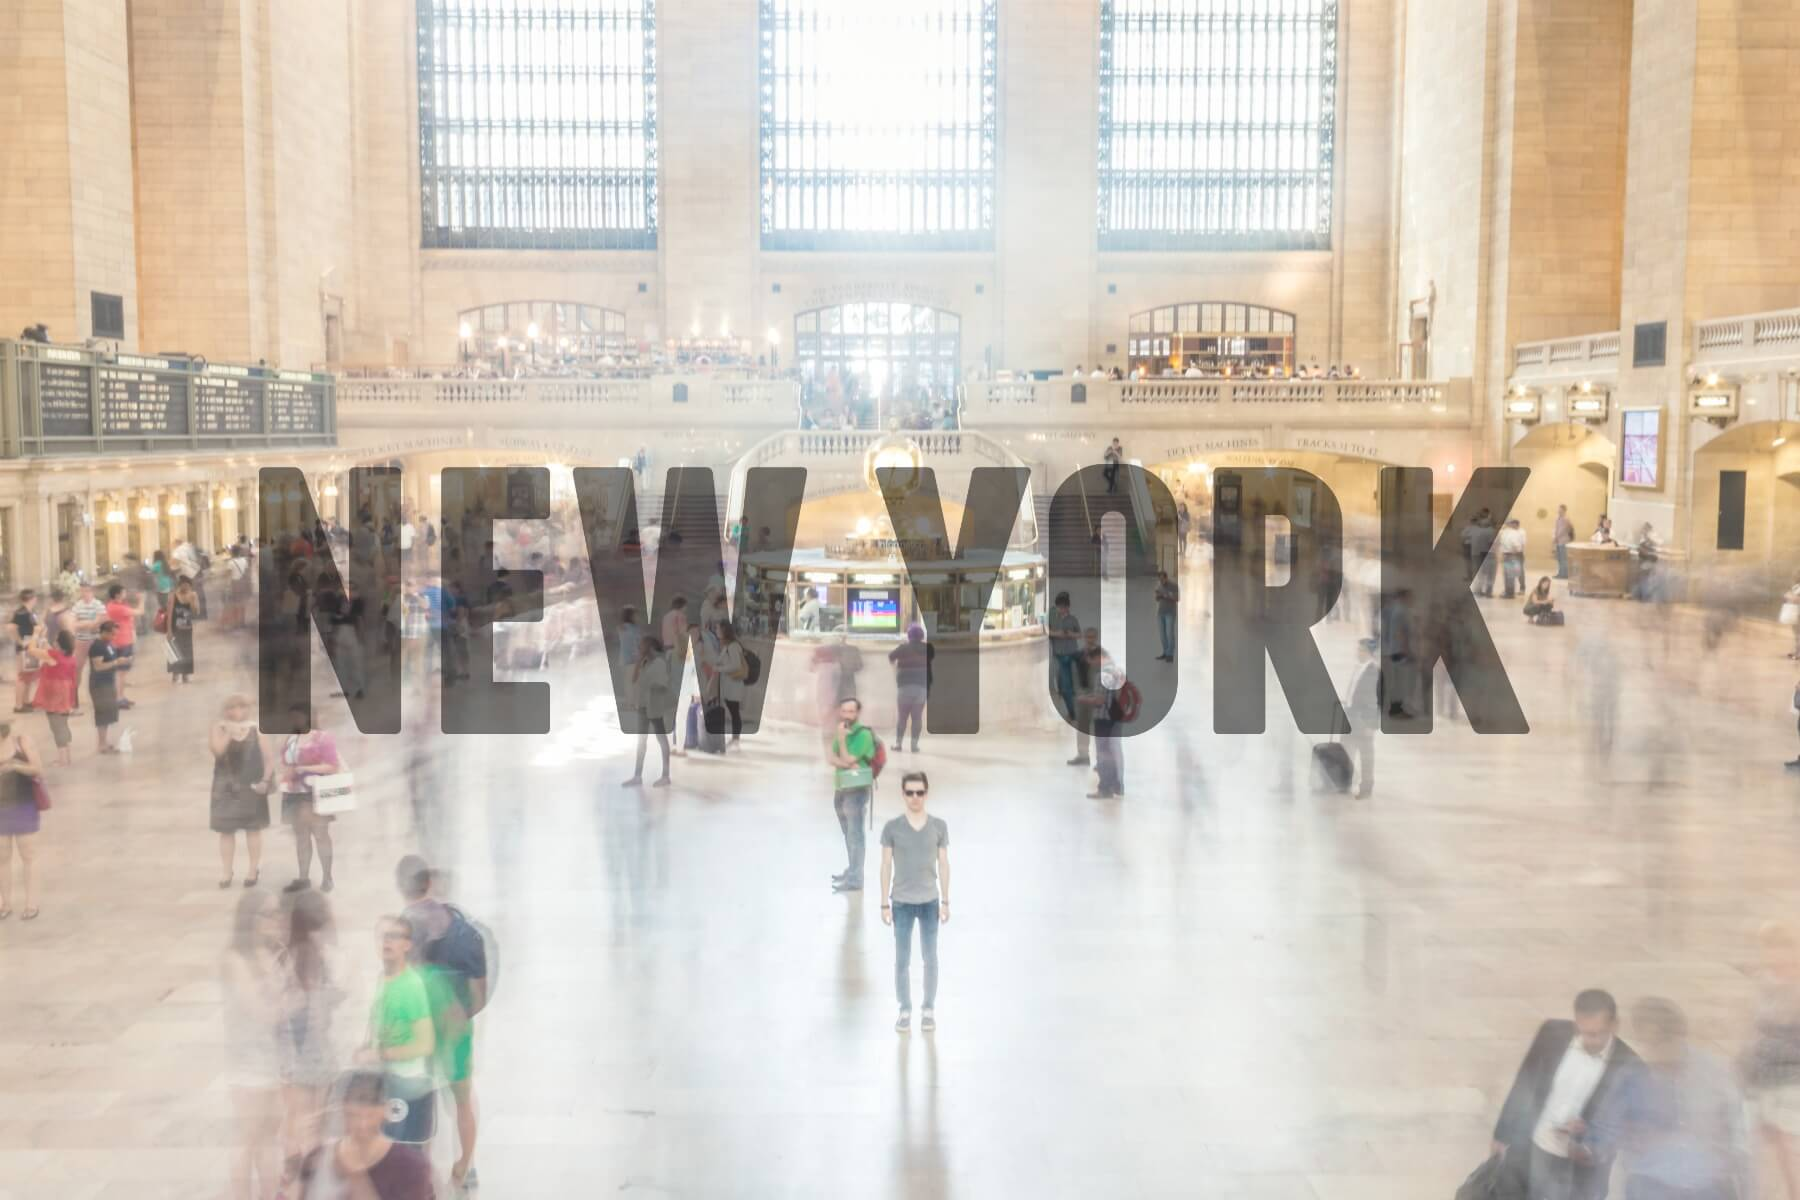 Inside Grand Central Station, New York with text overlay - New York